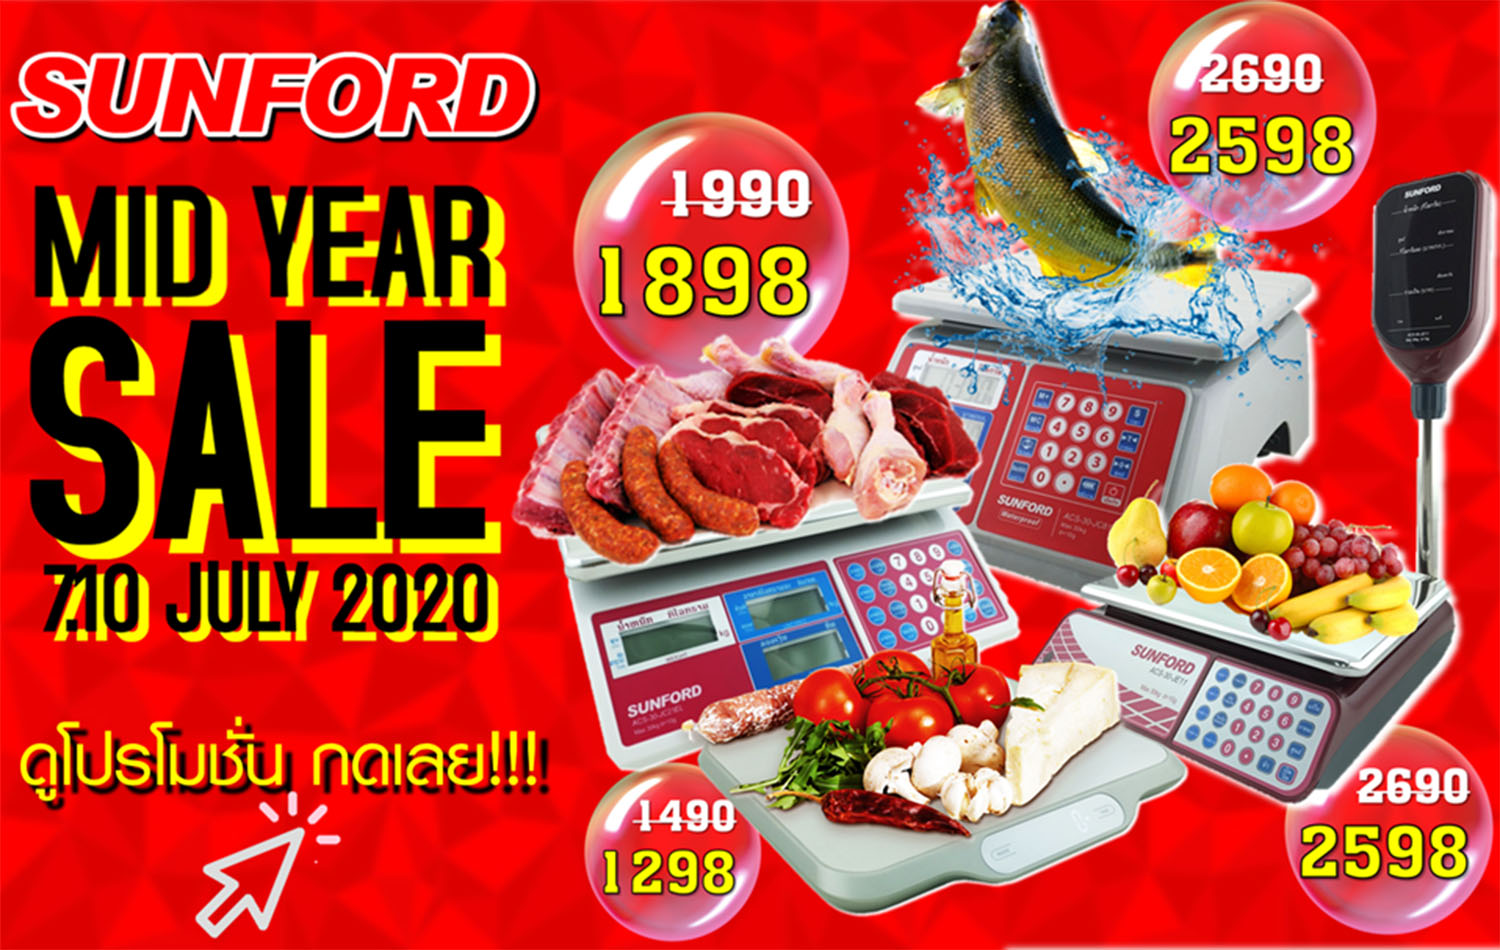 SUNFORD Mid Year Sales 7-10 July 2020